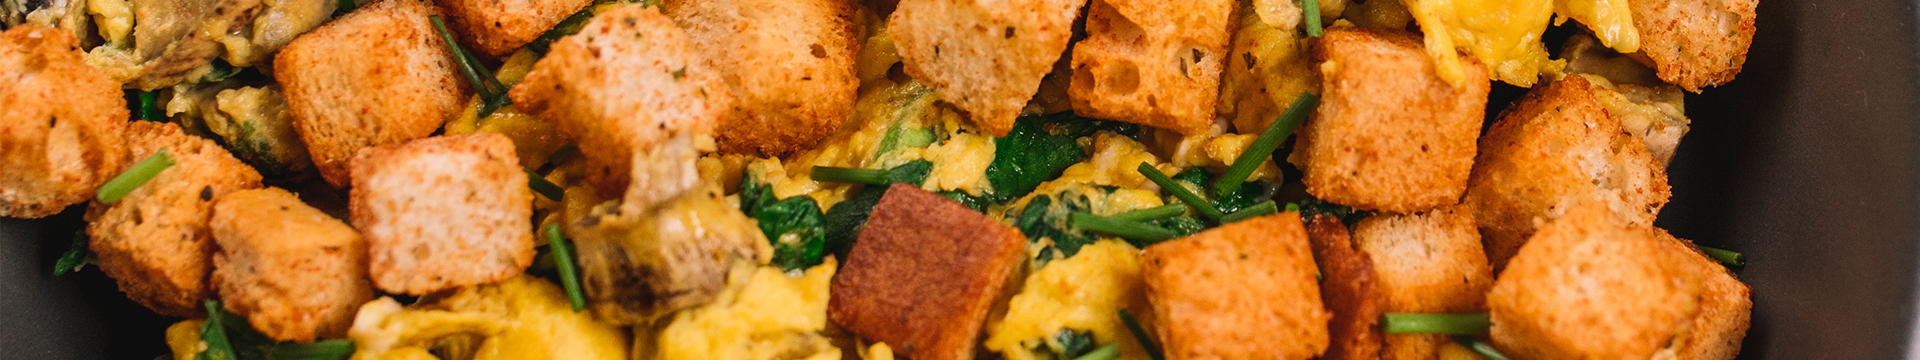 Creamy Scrambled Eggs with Croutons